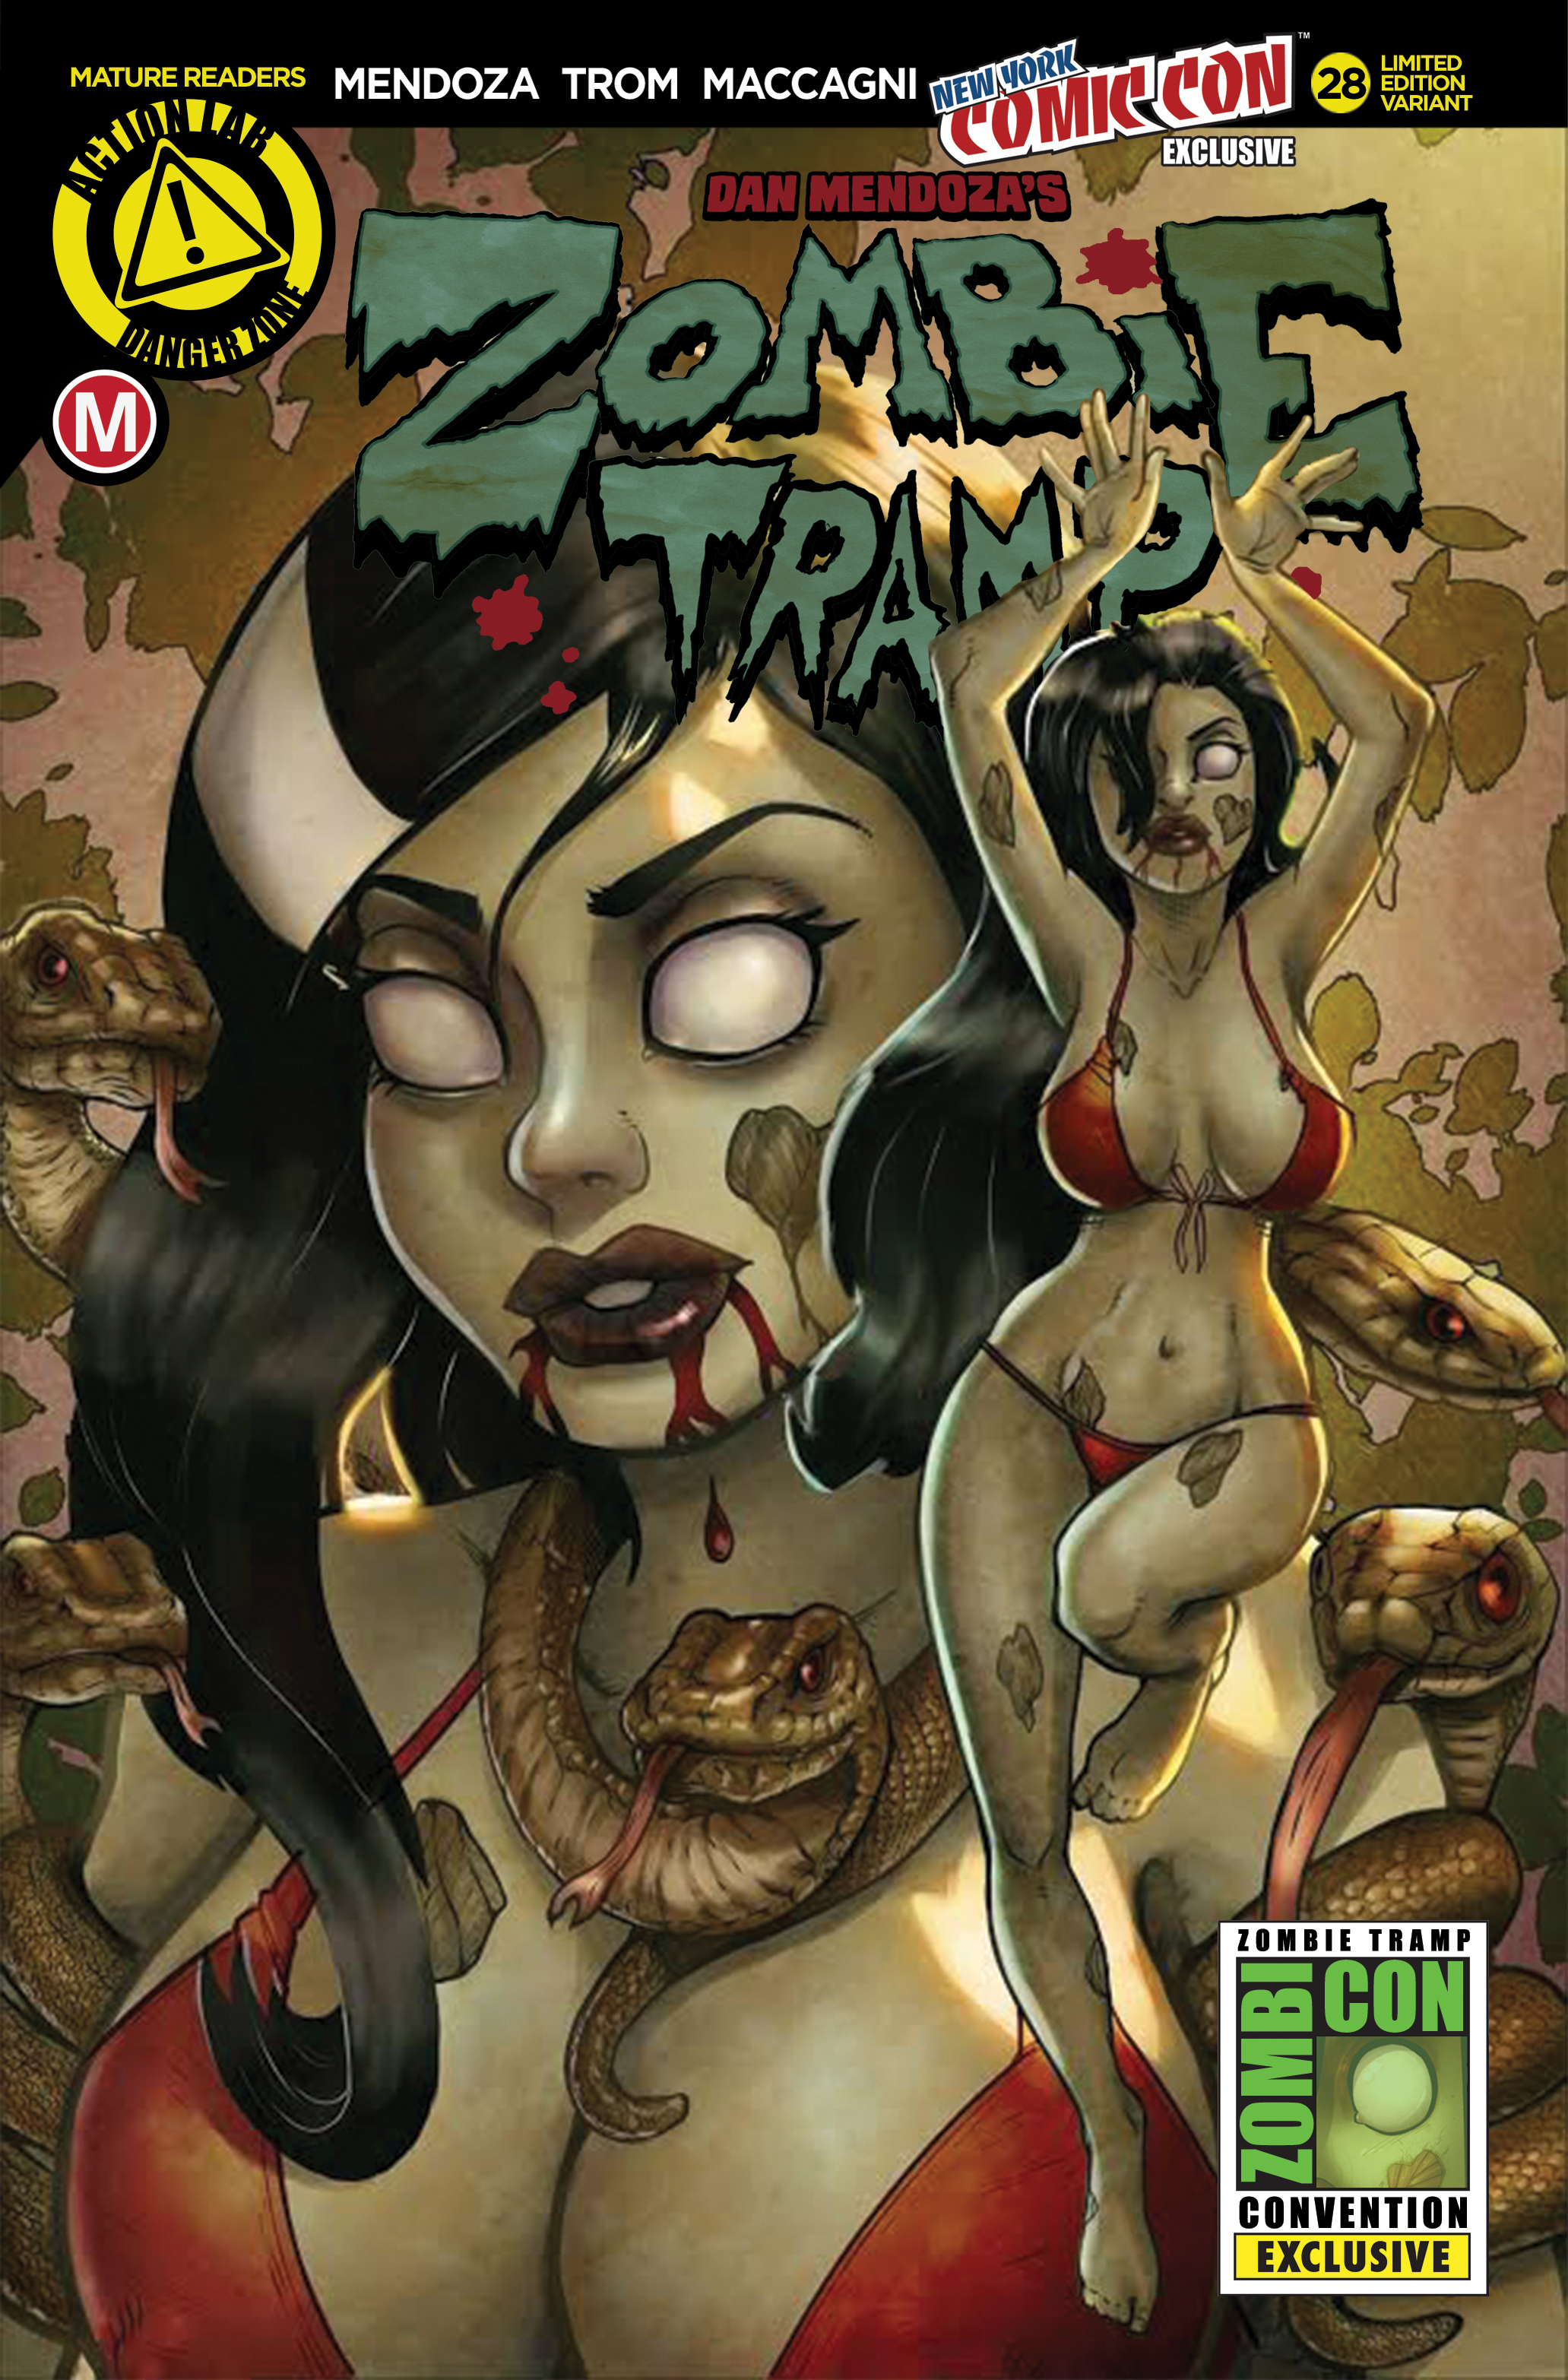 ZOMBIE TRAMP ONGOING #28 NYCC EX CVR (MR)